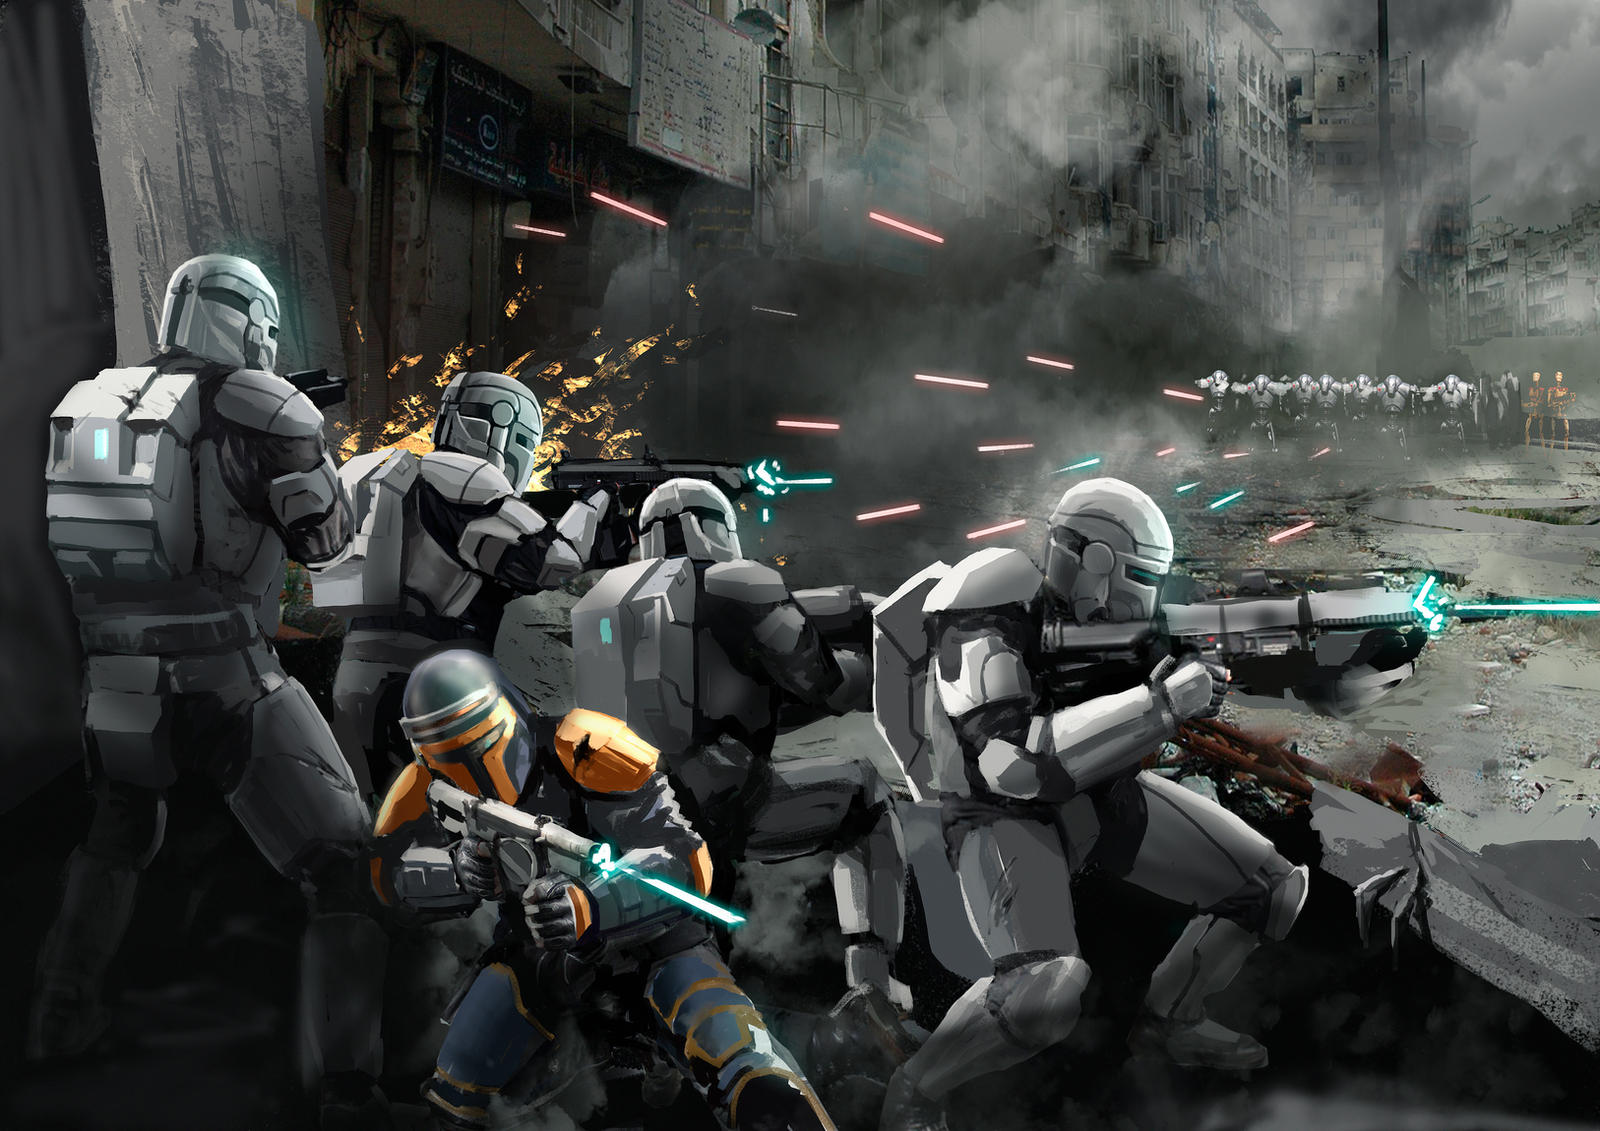 clone commando squad image - photo #15